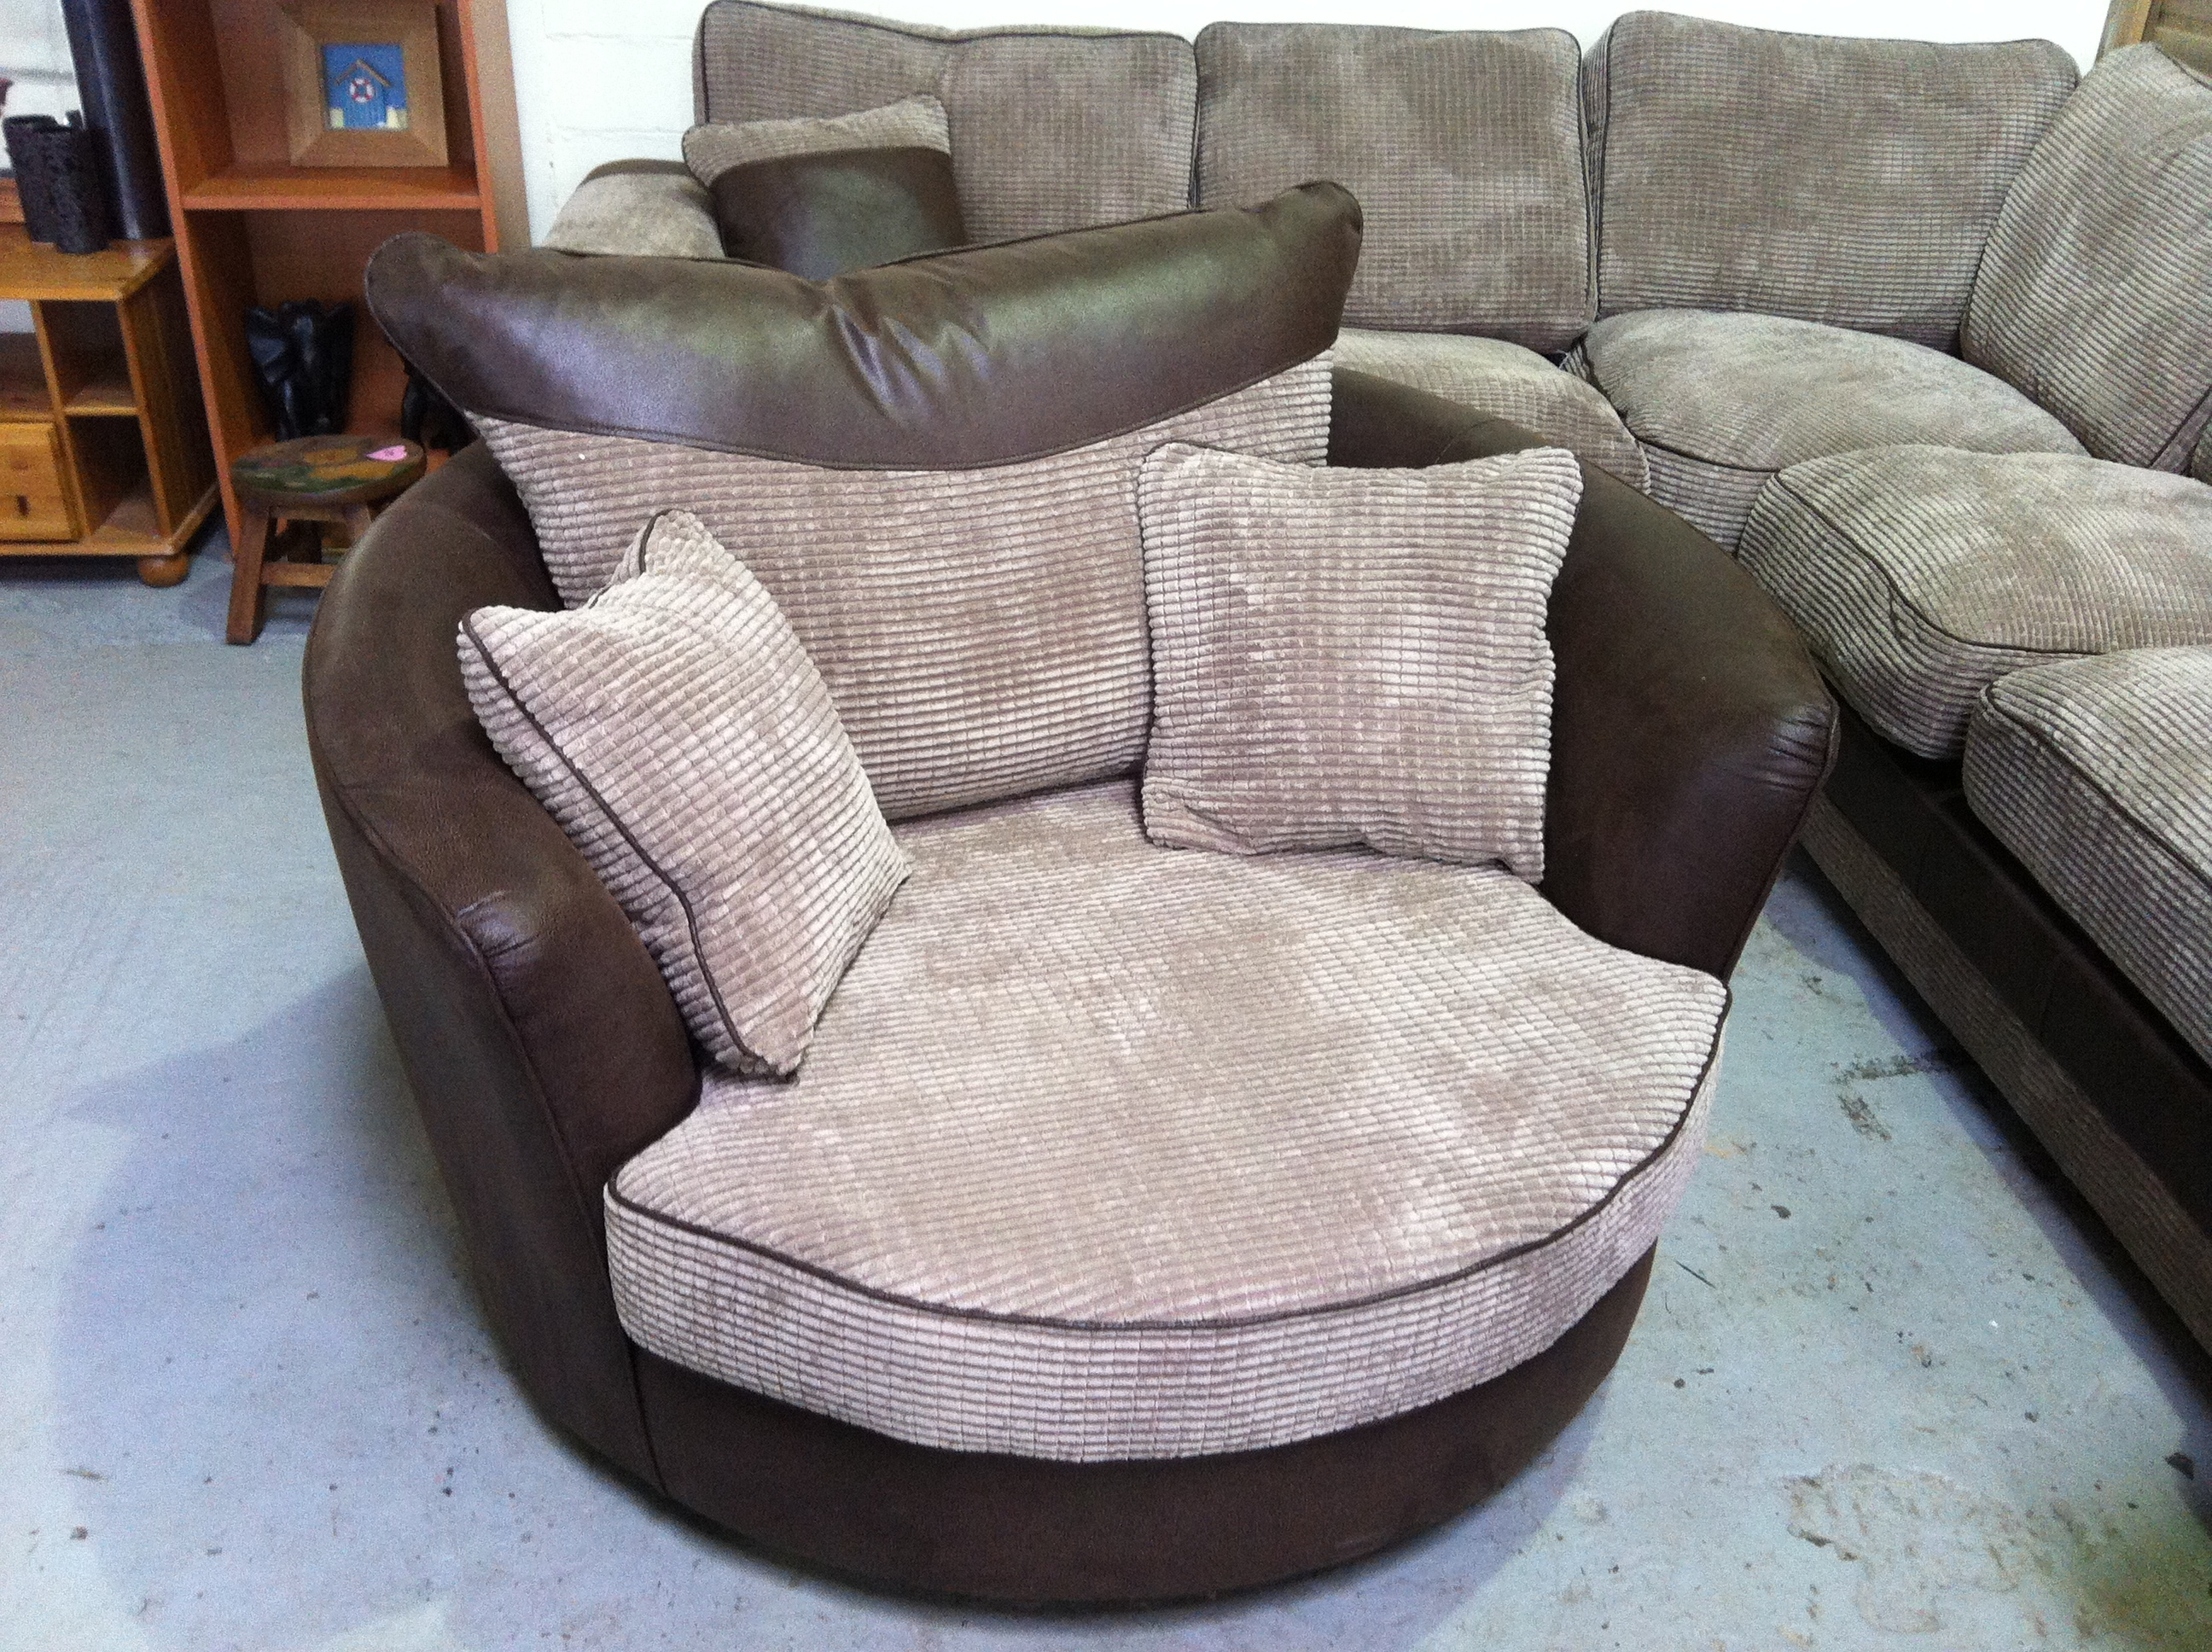 Sofas Center Swivel Sofa Chair And Setround Chairsofa Set Round Throughout Swivel Sofa Chairs (Image 10 of 15)